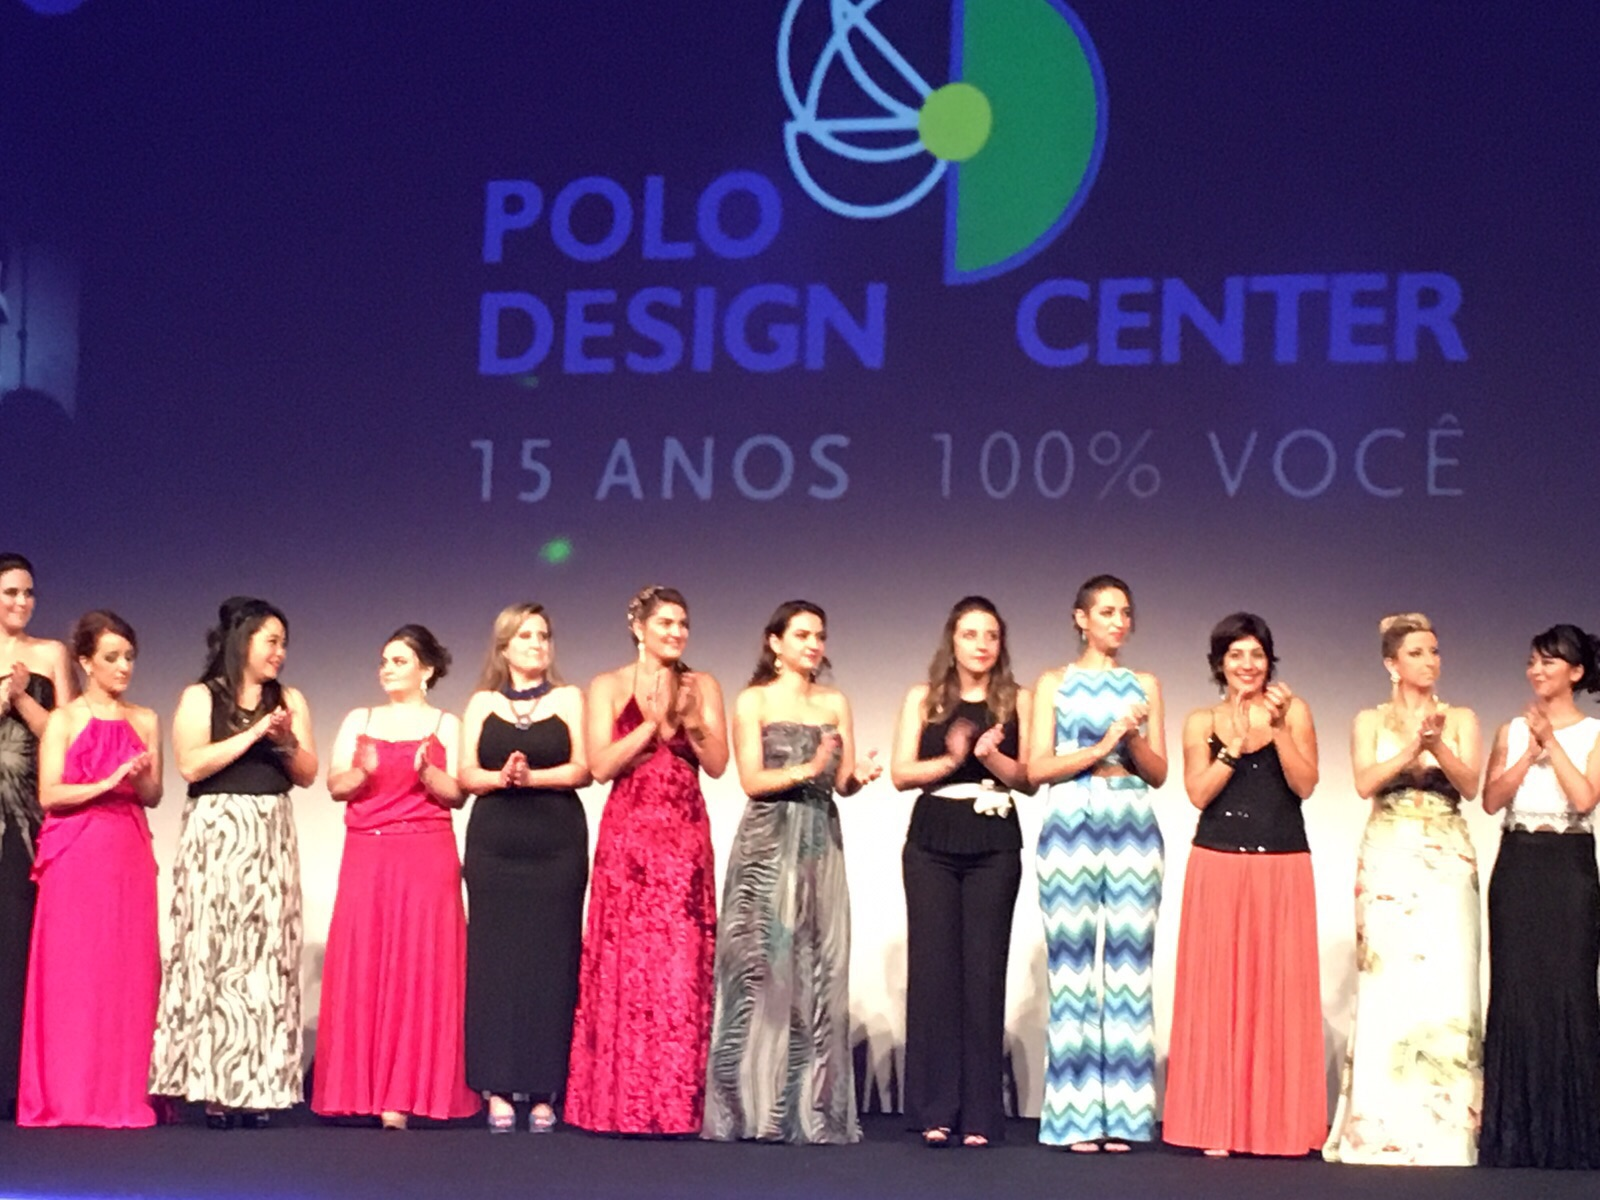 Polo Design Center 2015